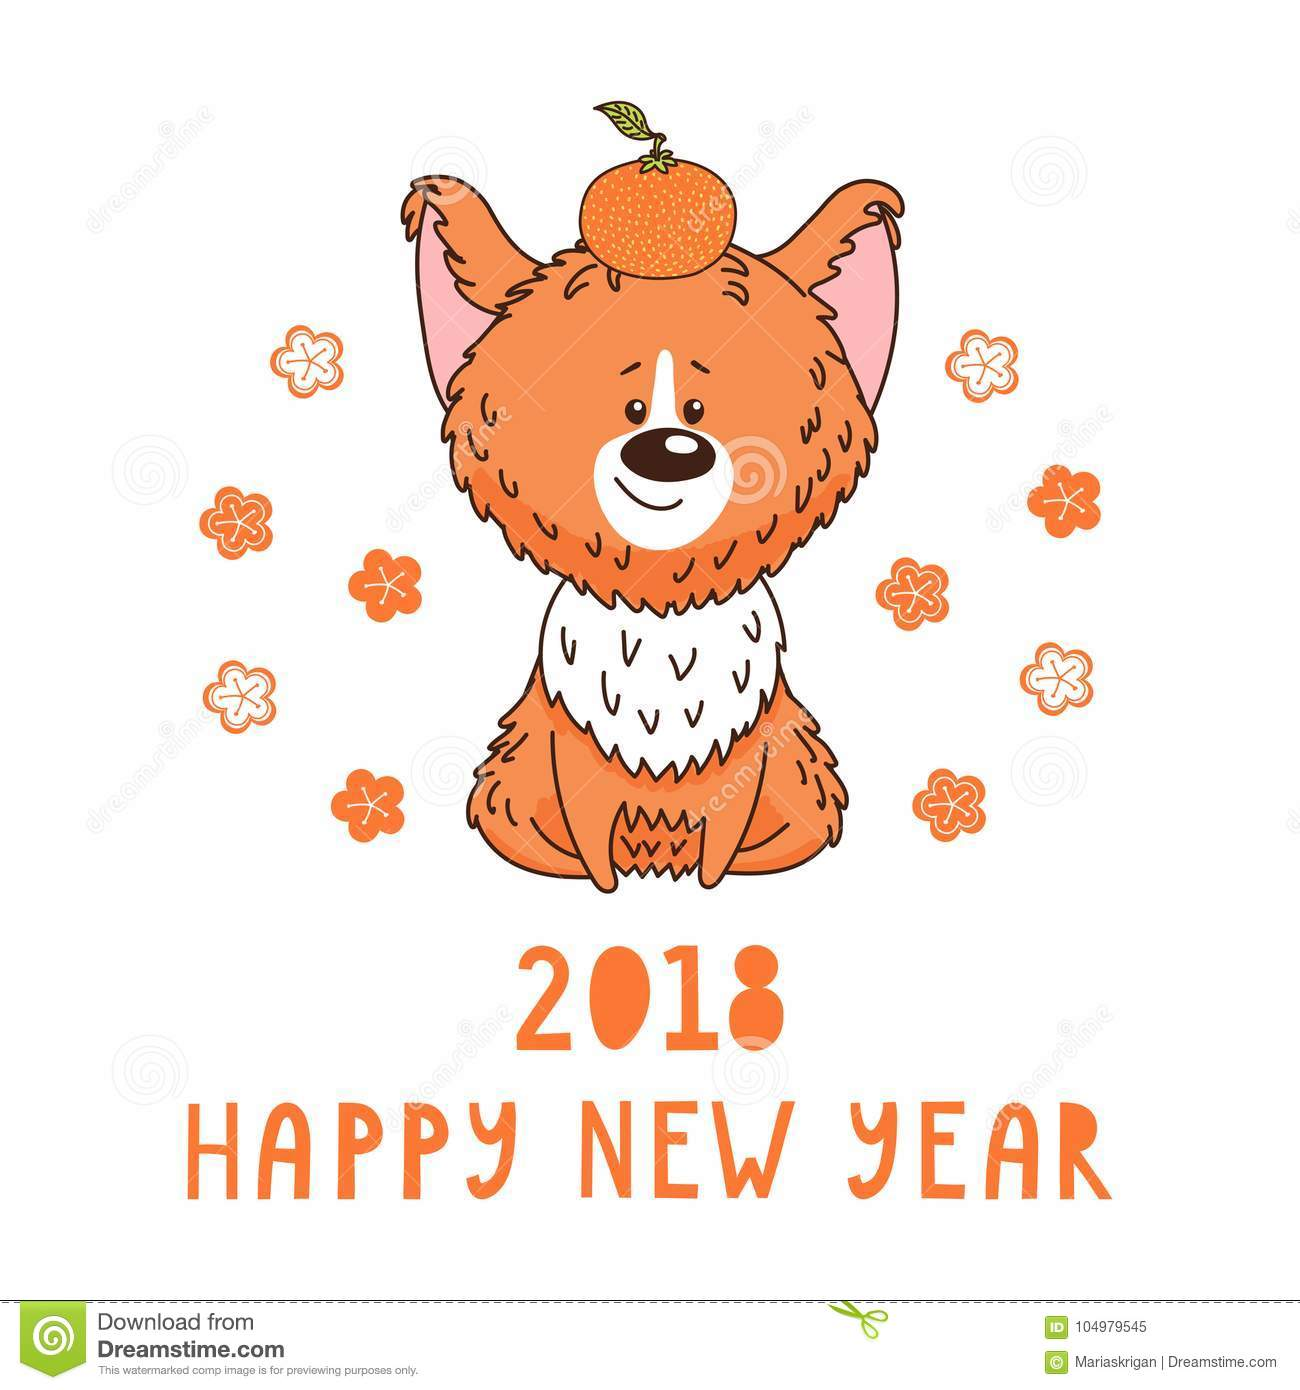 Cute Dog New Year Greeting Card Stock Vector - Illustration of face ...